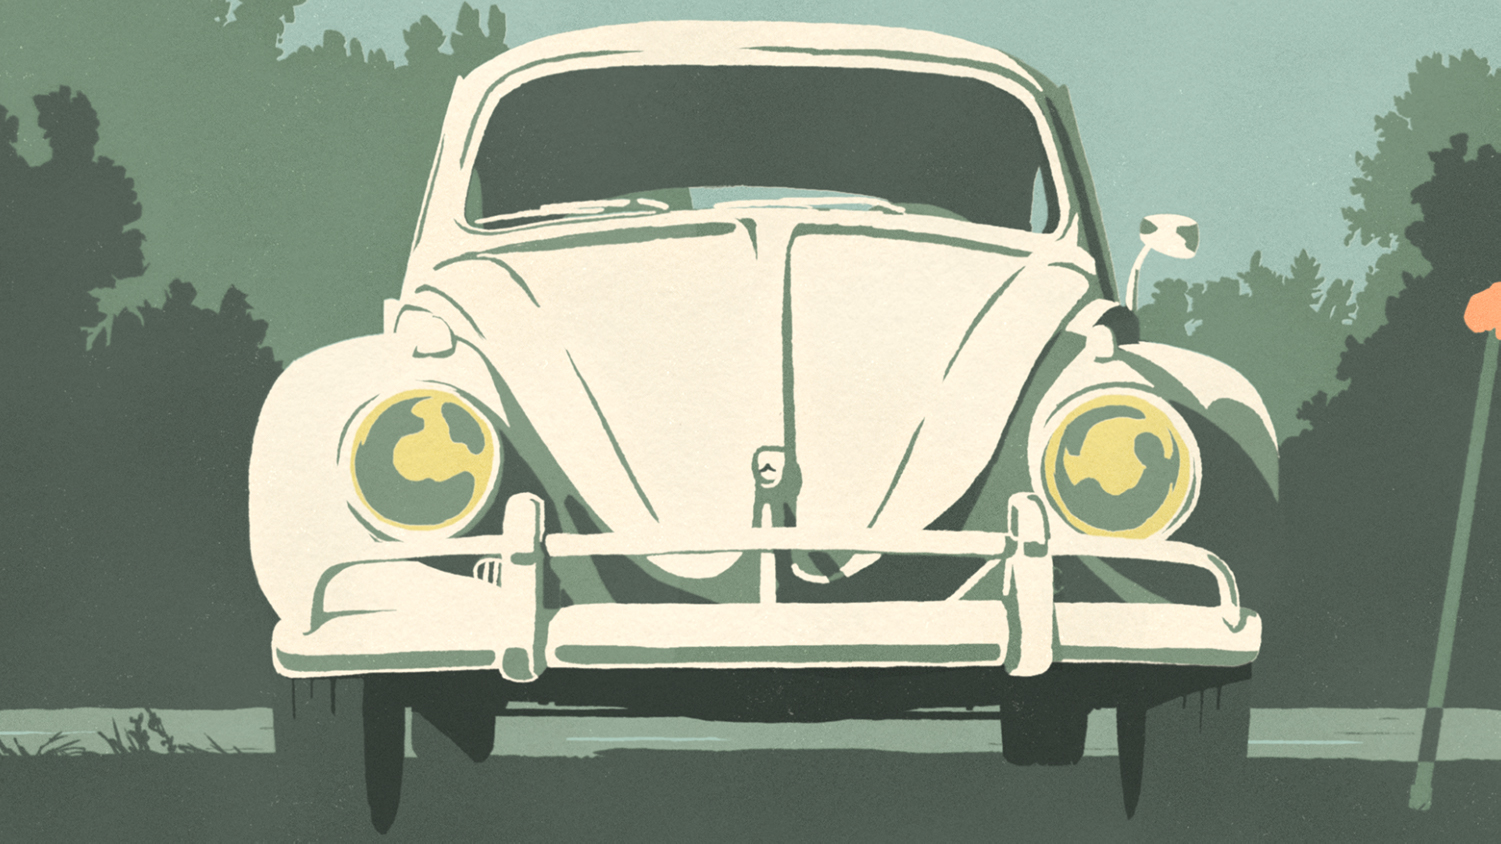 farewell beetle graphic